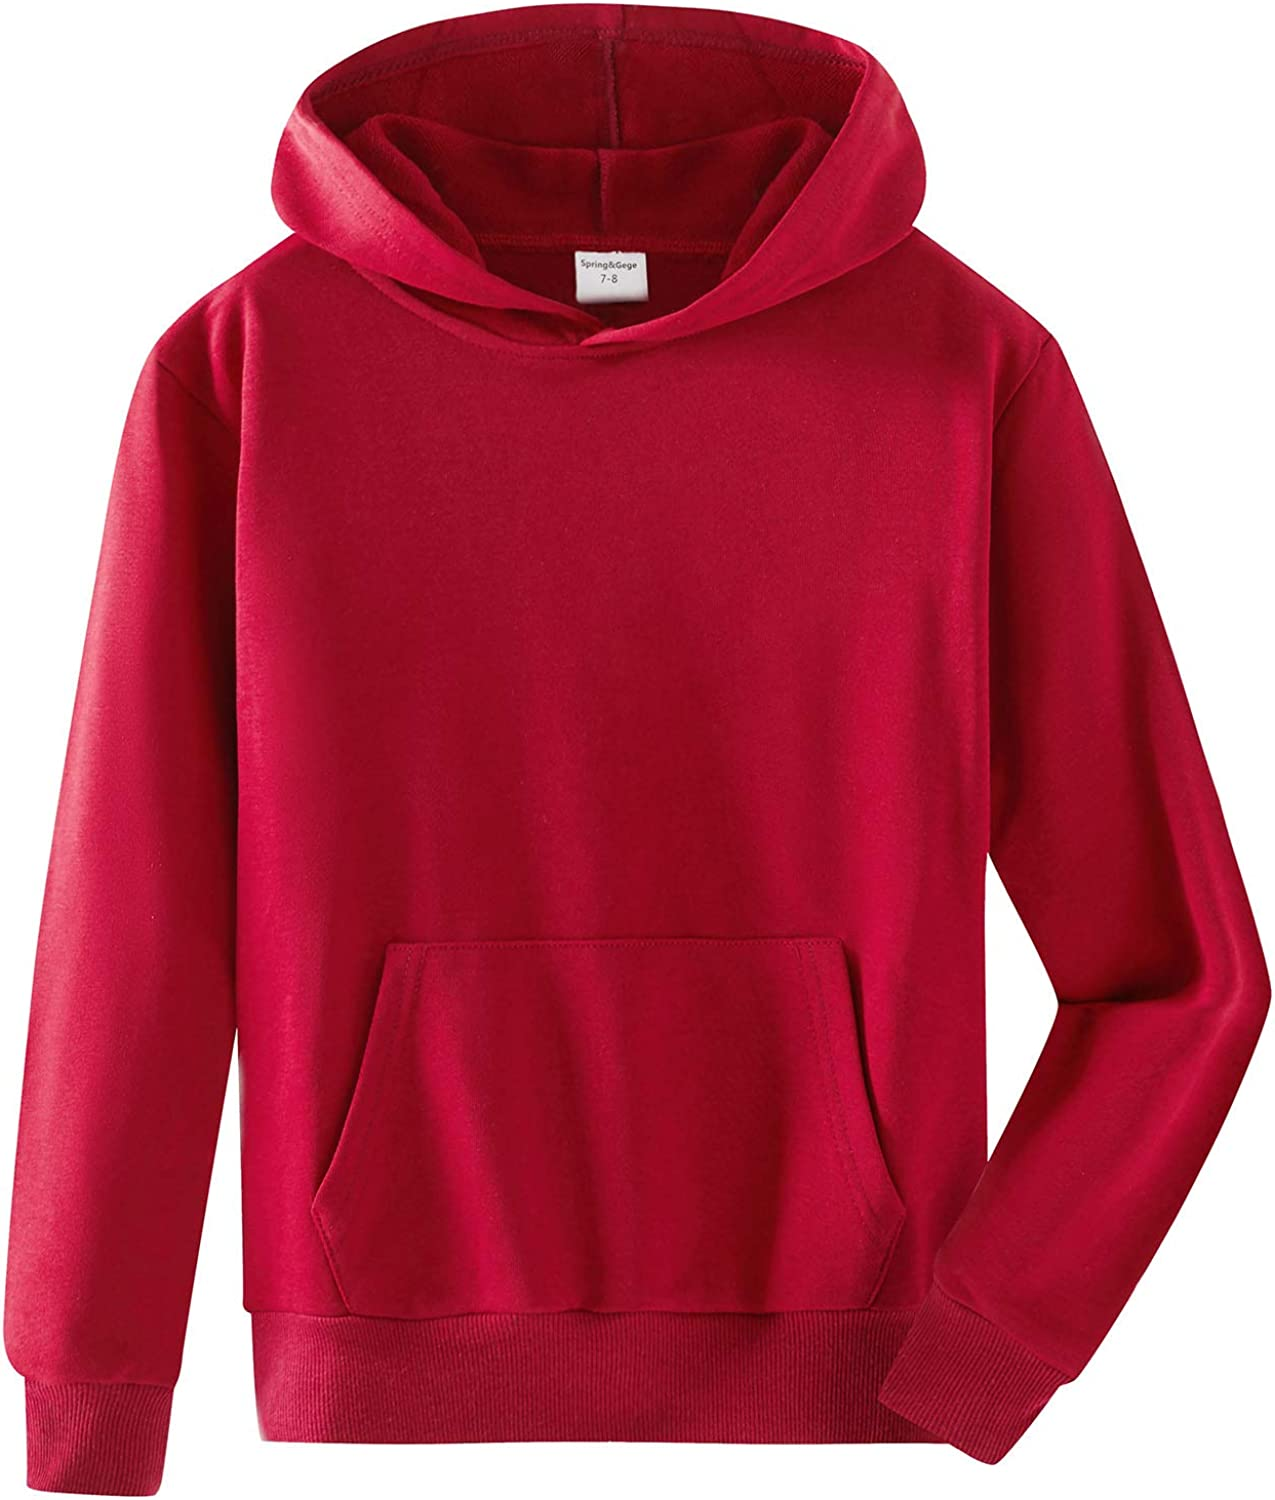 SpringGege Youth Solid Classic Hoodies Hooded Pullover Soft Swe Now free shipping Popular brand